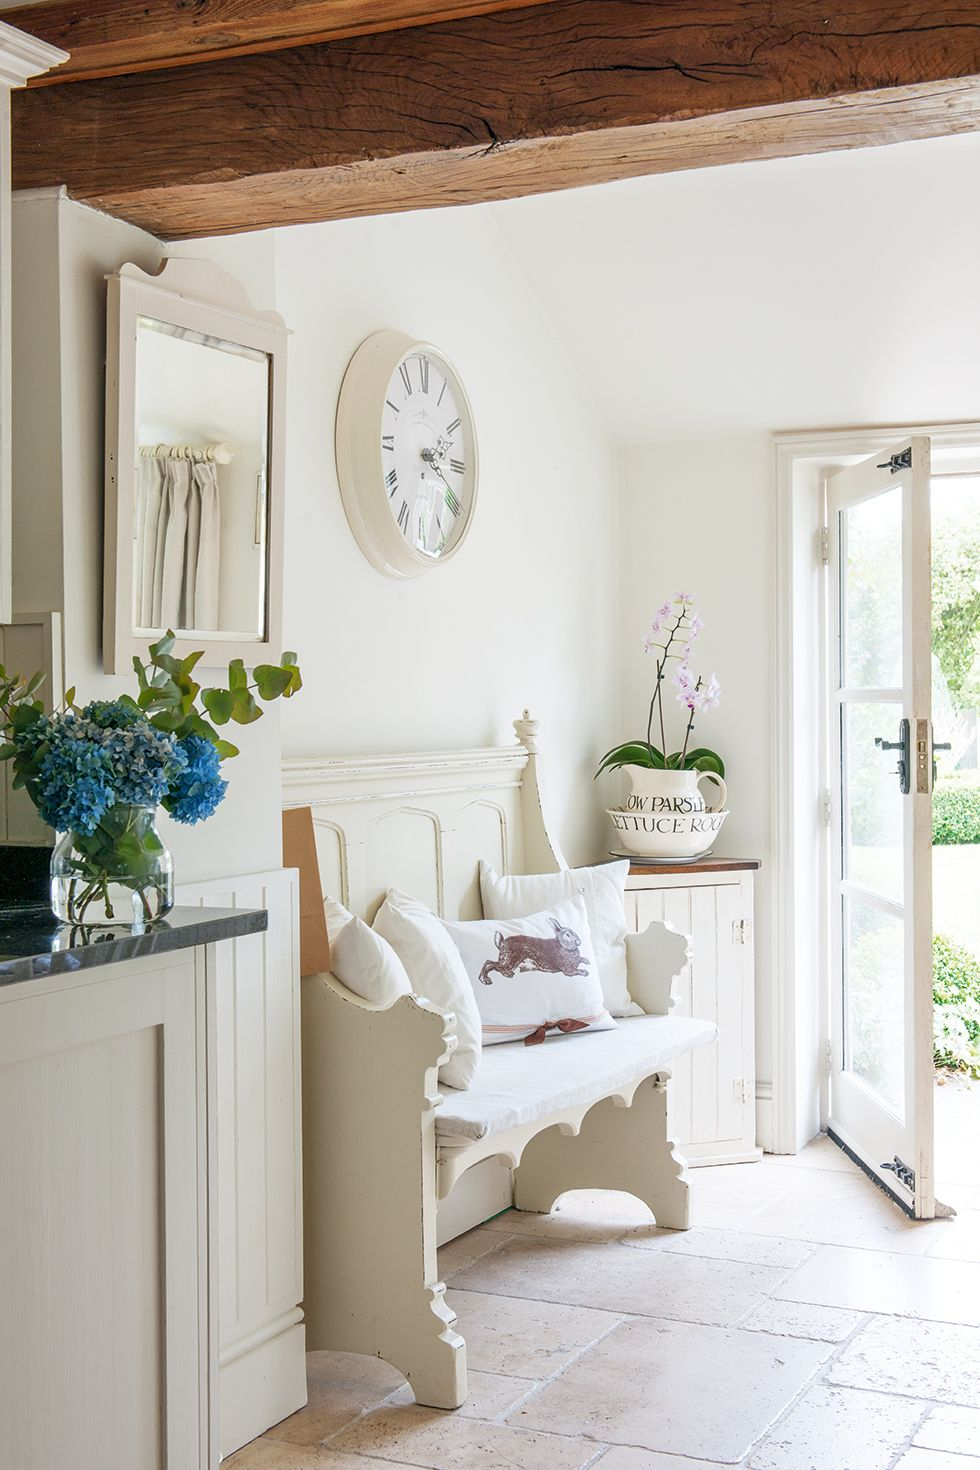 Real Home Renovating A Country Farmhouse Shabby Chic Hallway